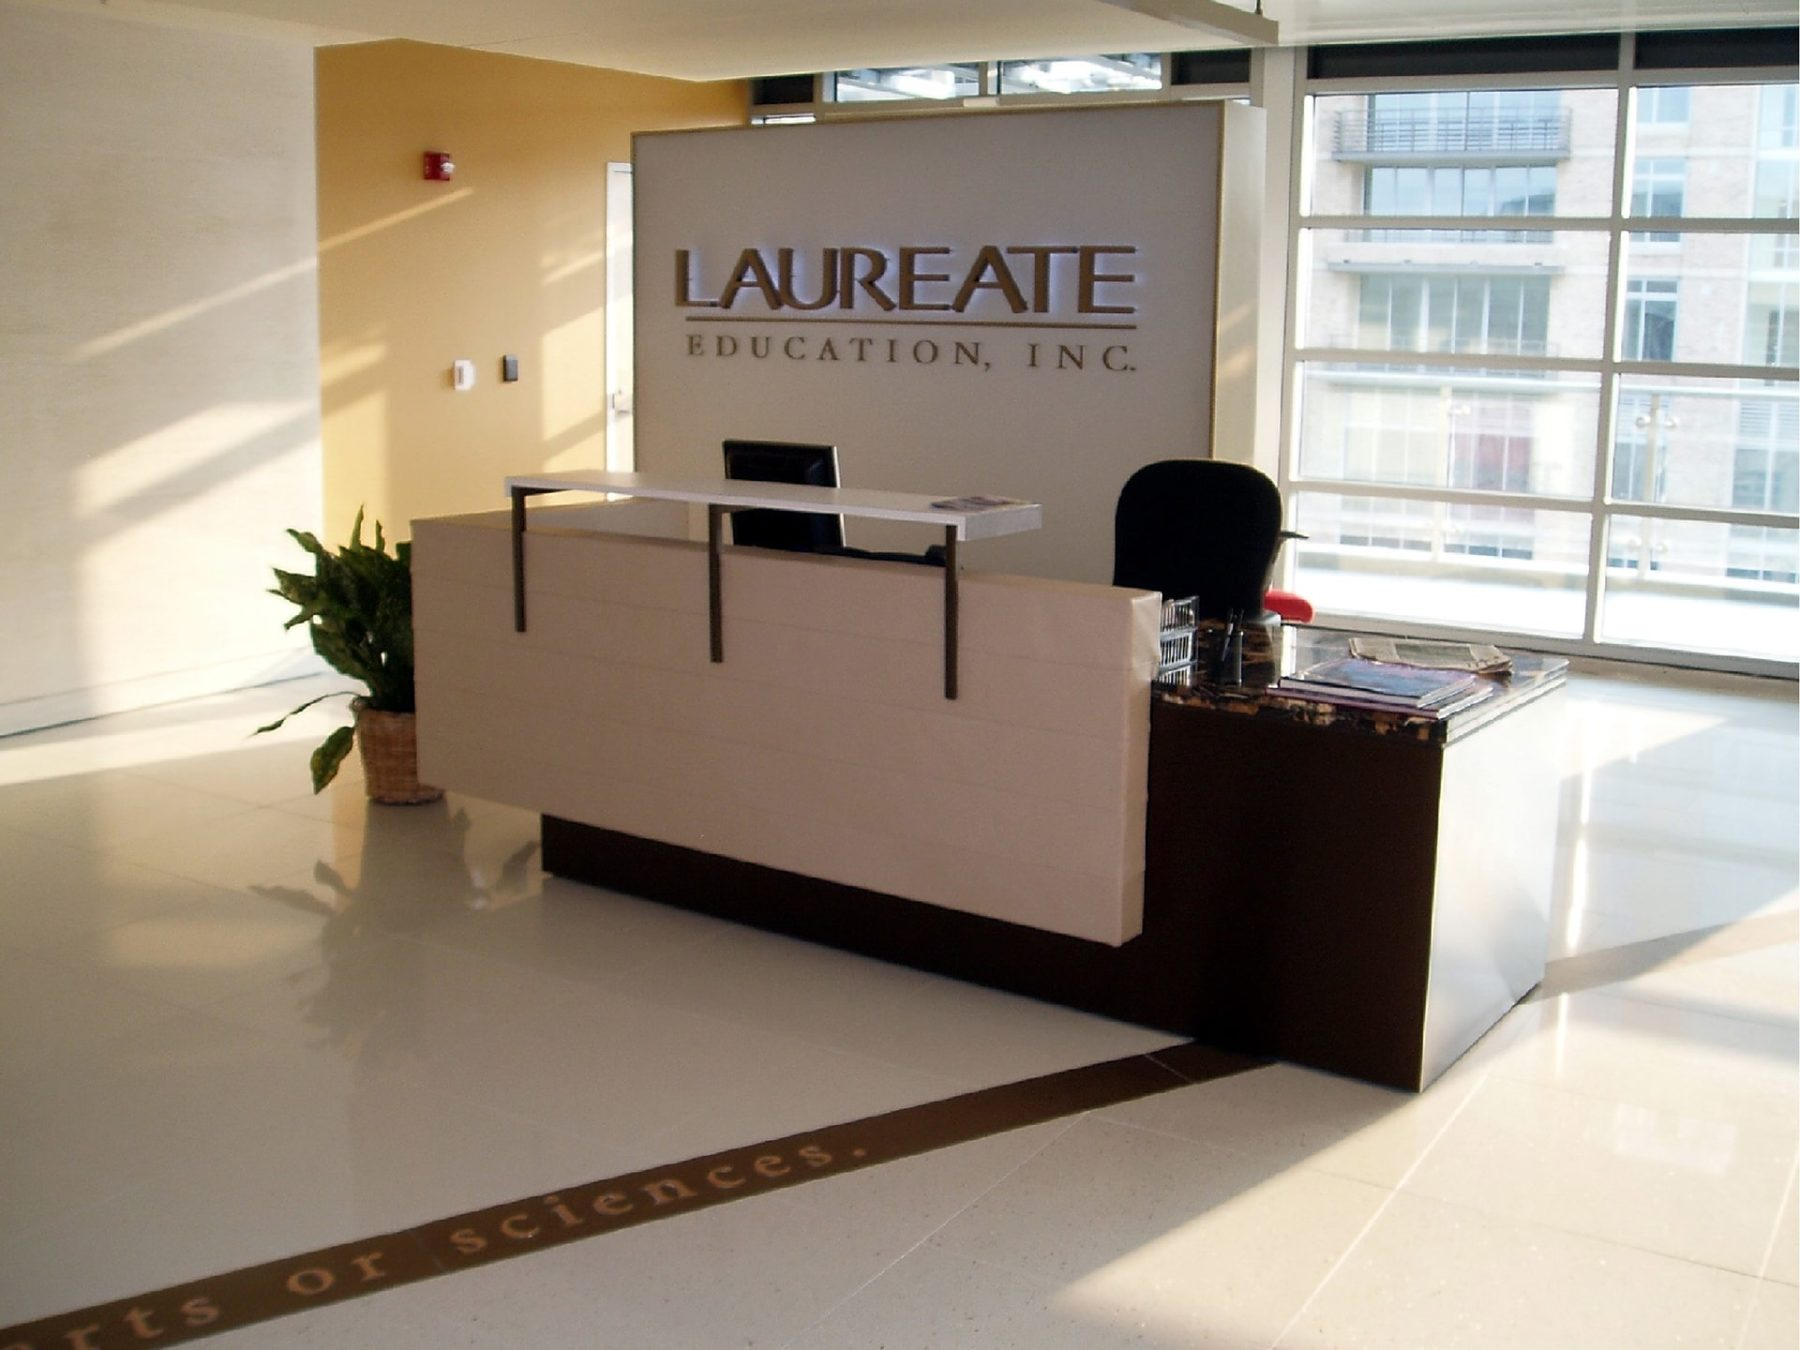 Laureate Education, Inc. Global Headquarters